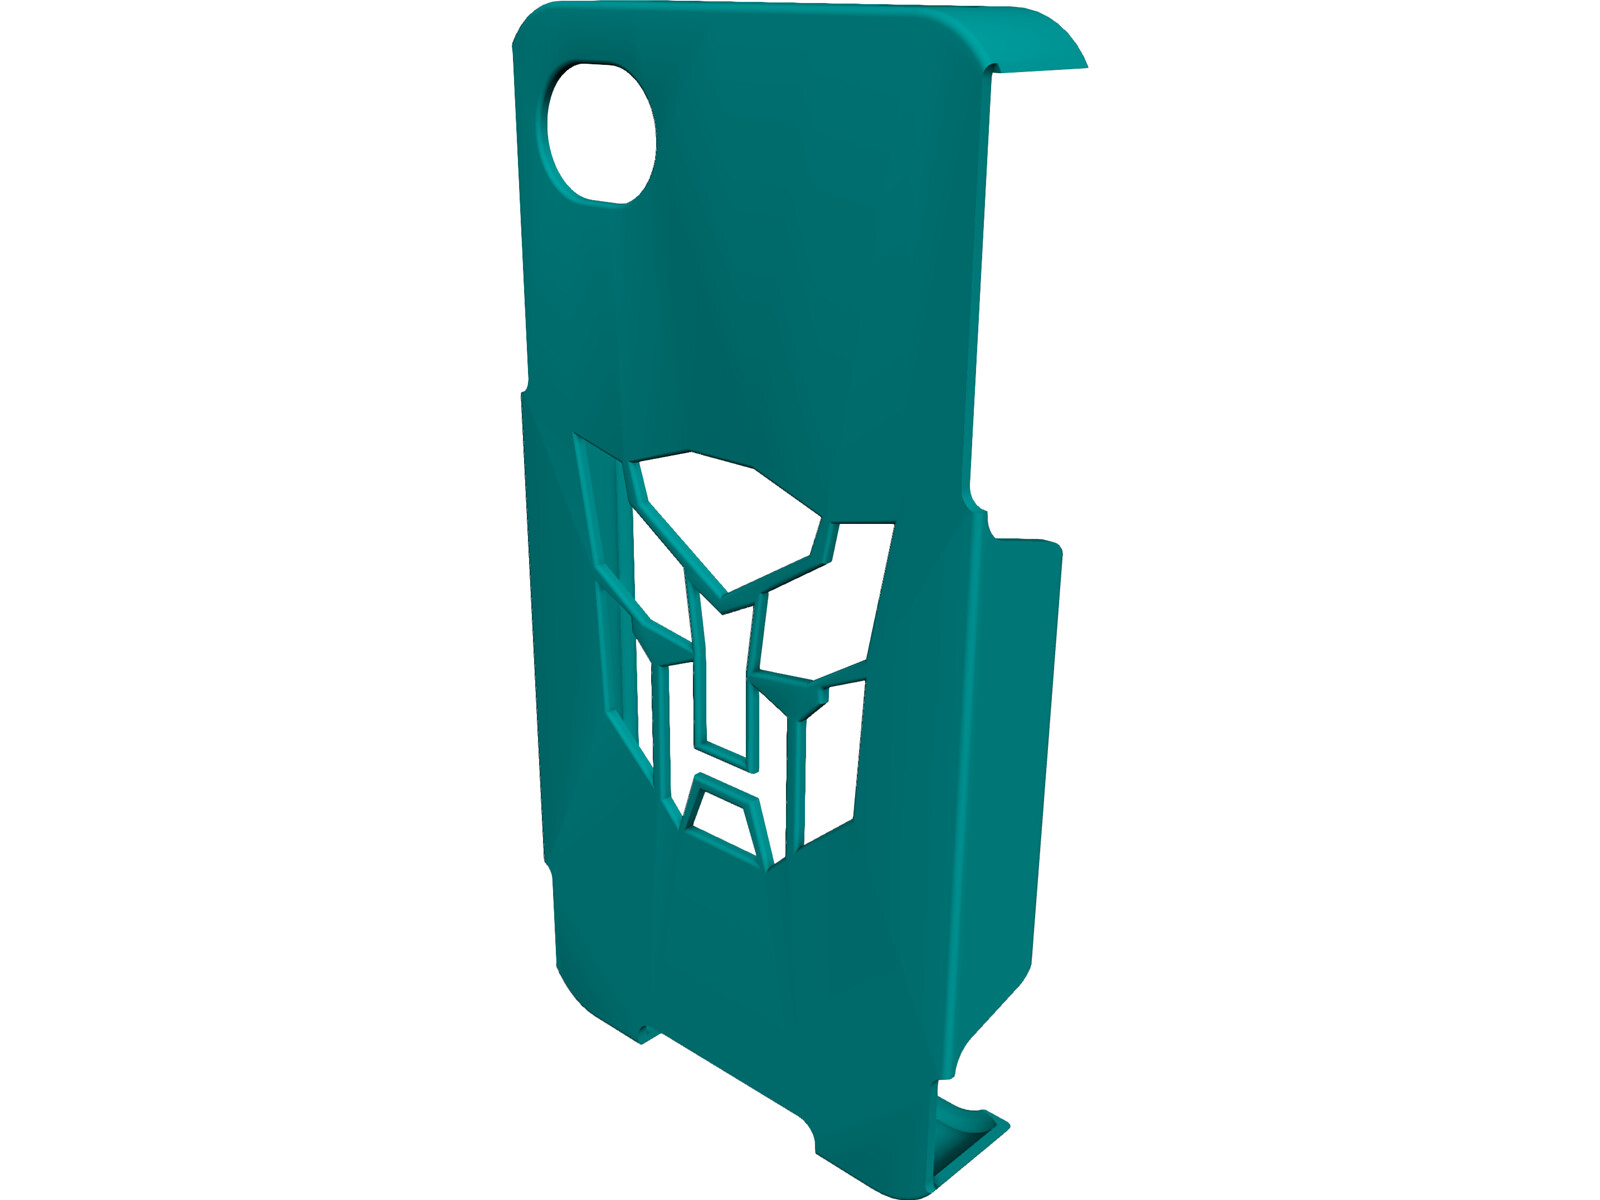 Transformers iPhone Case 3D CAD Model